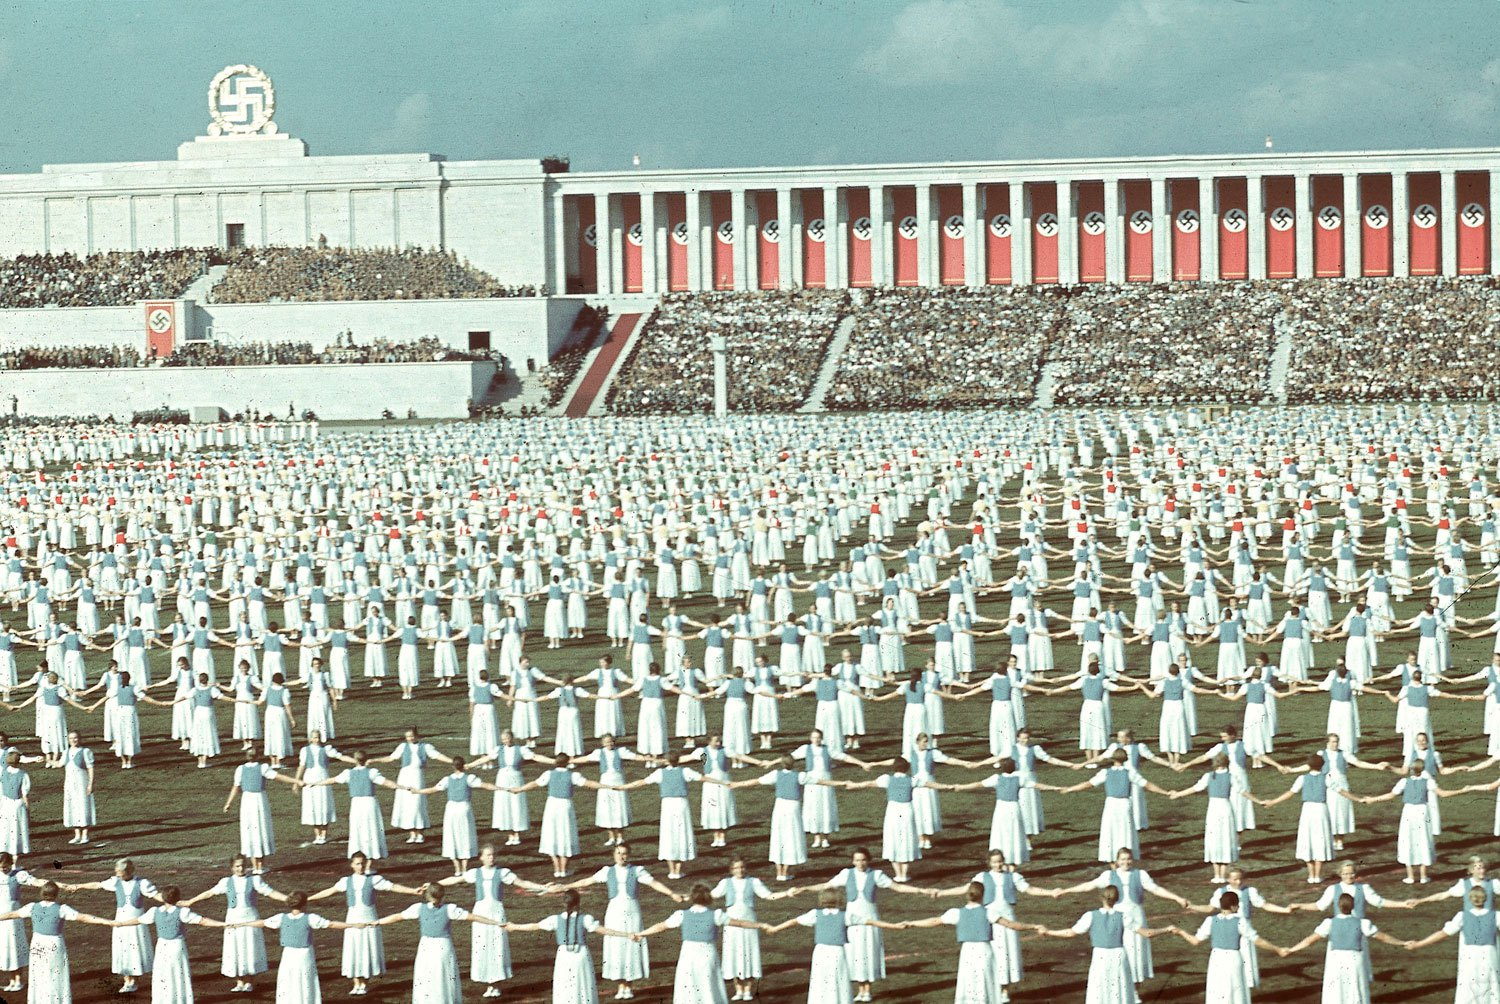 League of German Girls dancing during the 1938 Reich Party Congress Nuremberg